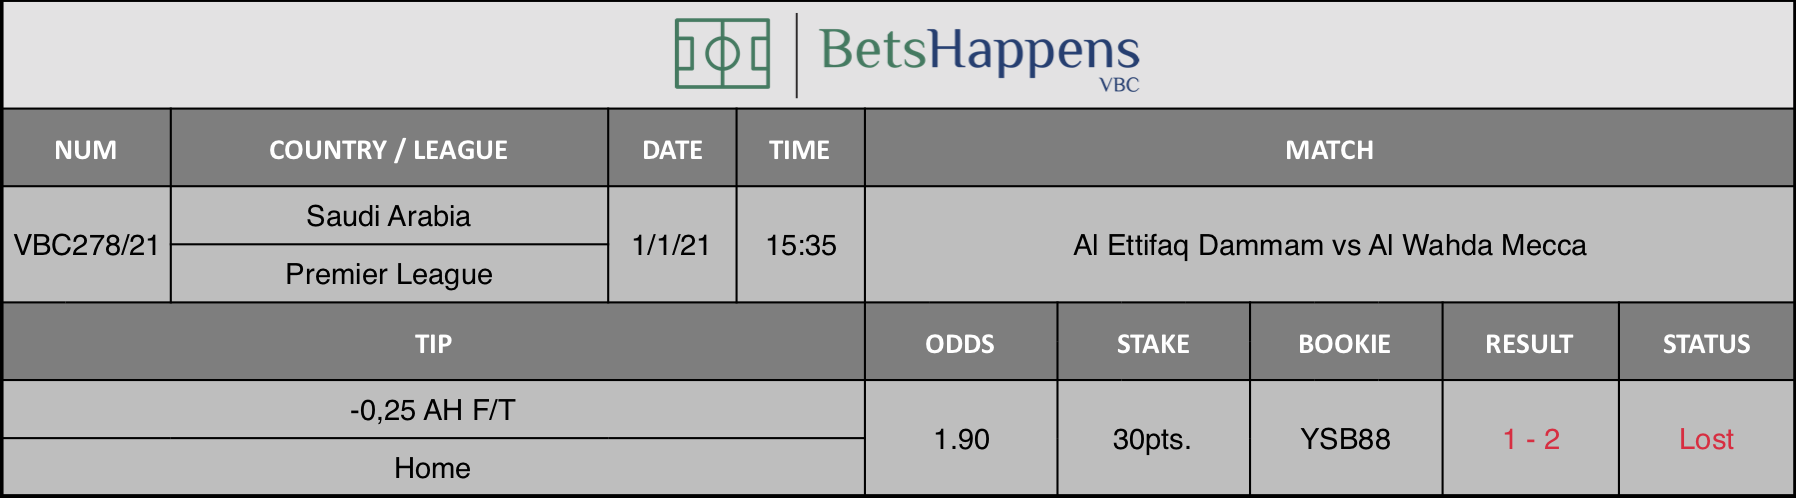 Results of our tip for the Al Ettifaq Dammam vs Al Wahda Mecca match where -0,25 AH F/T Home is recommended.